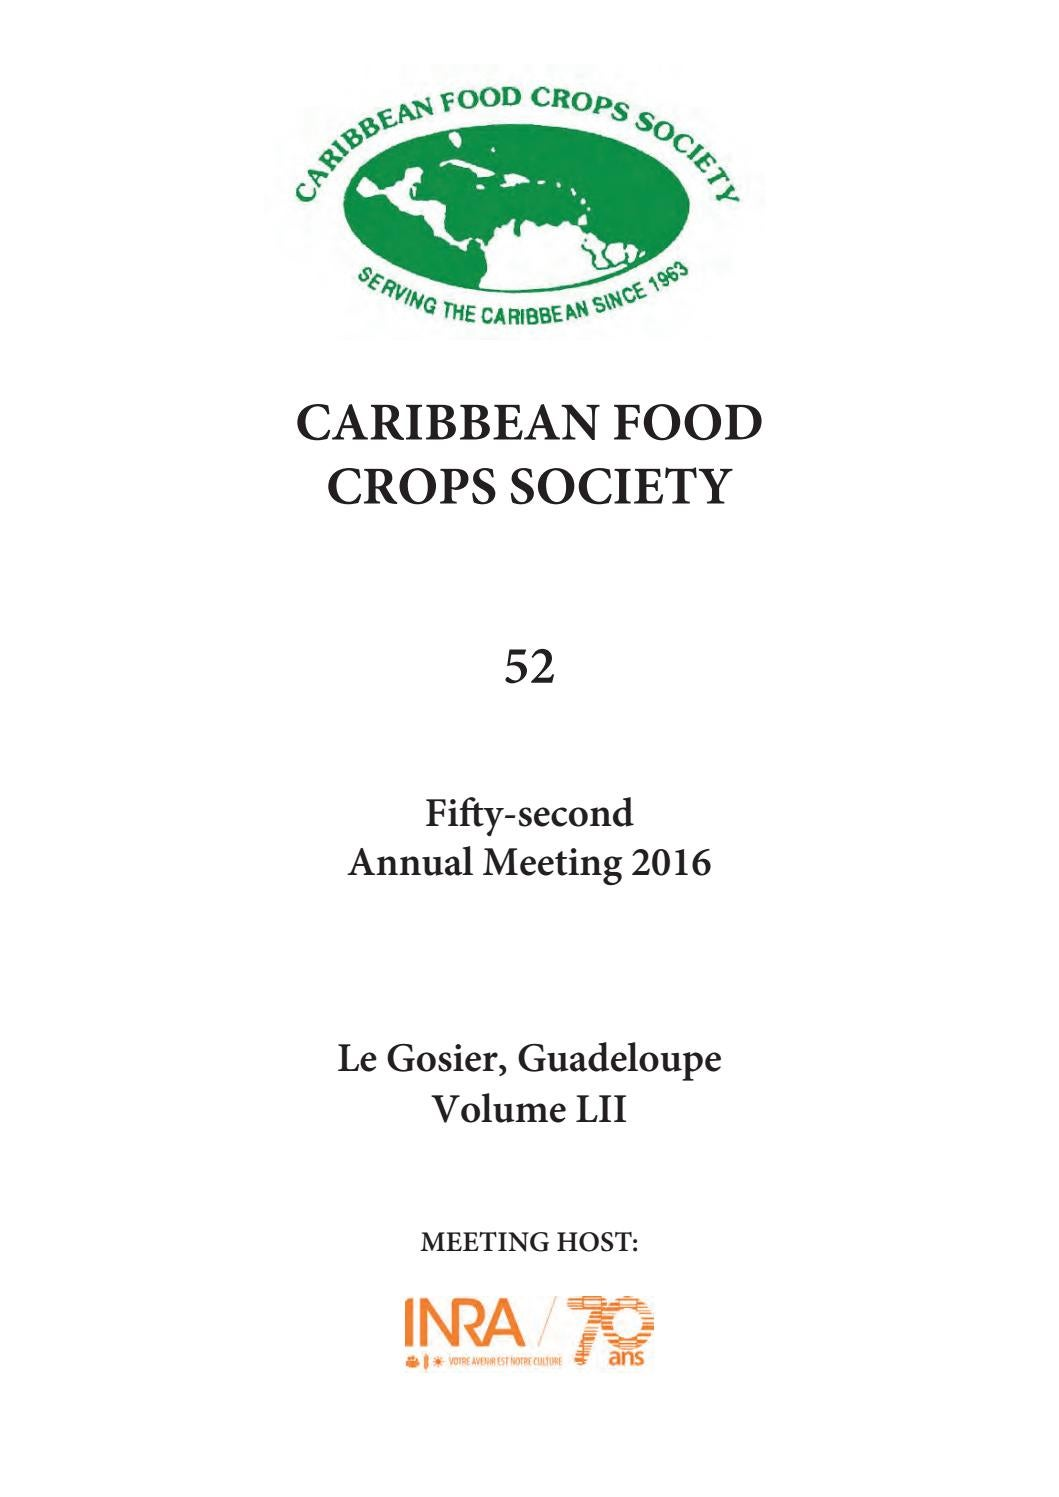 Proceedings of the 52nd annual meeting of the Caribbean Food